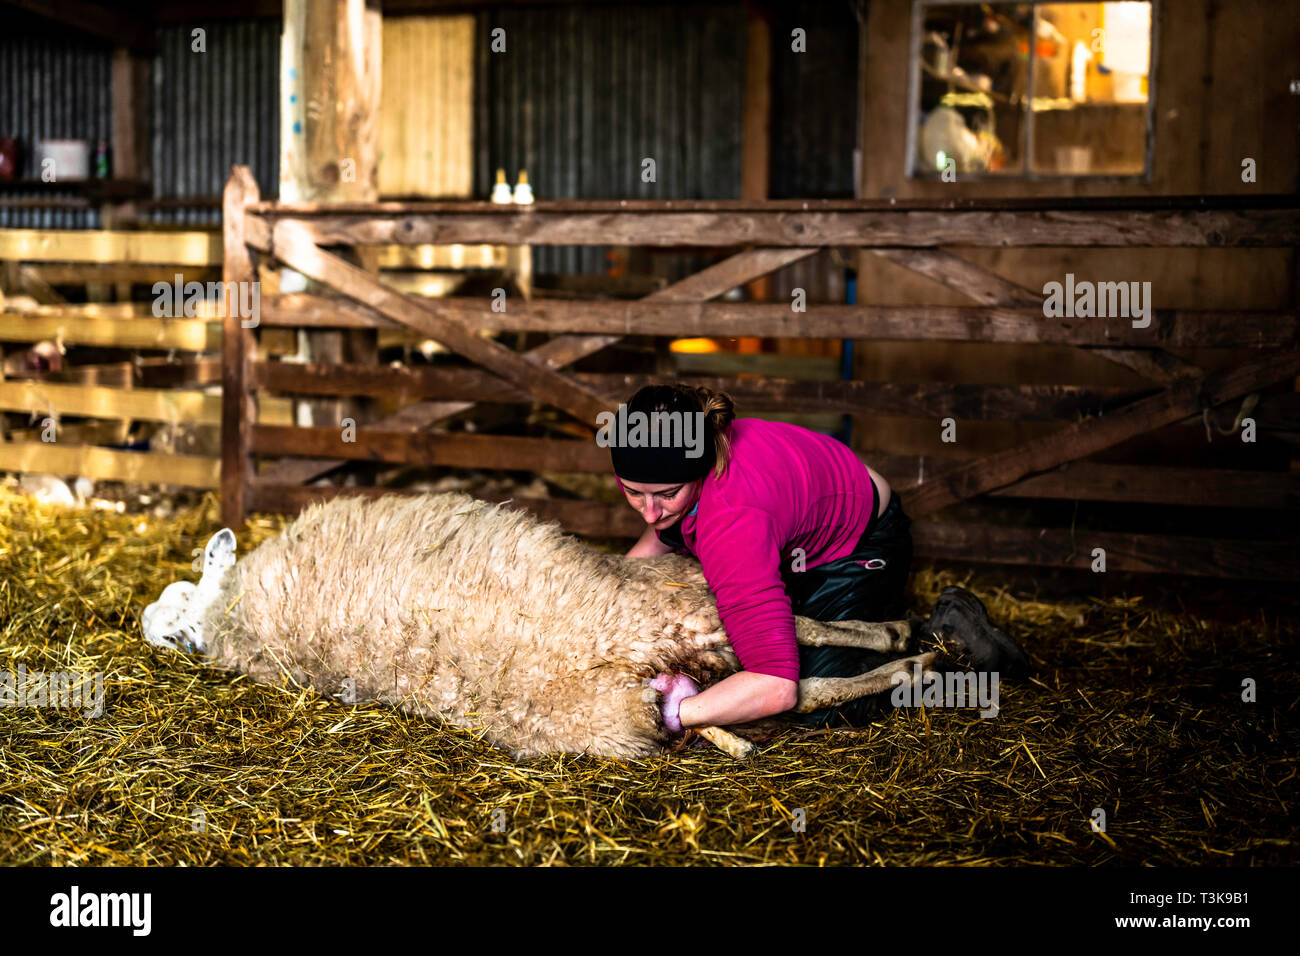 Oxnam, Jedburgh, Scottish Borders, UK. 26th March 2019. Cheviot mule ewes and lambs in a lambing shed in the Scottish Borders. - Stock Image